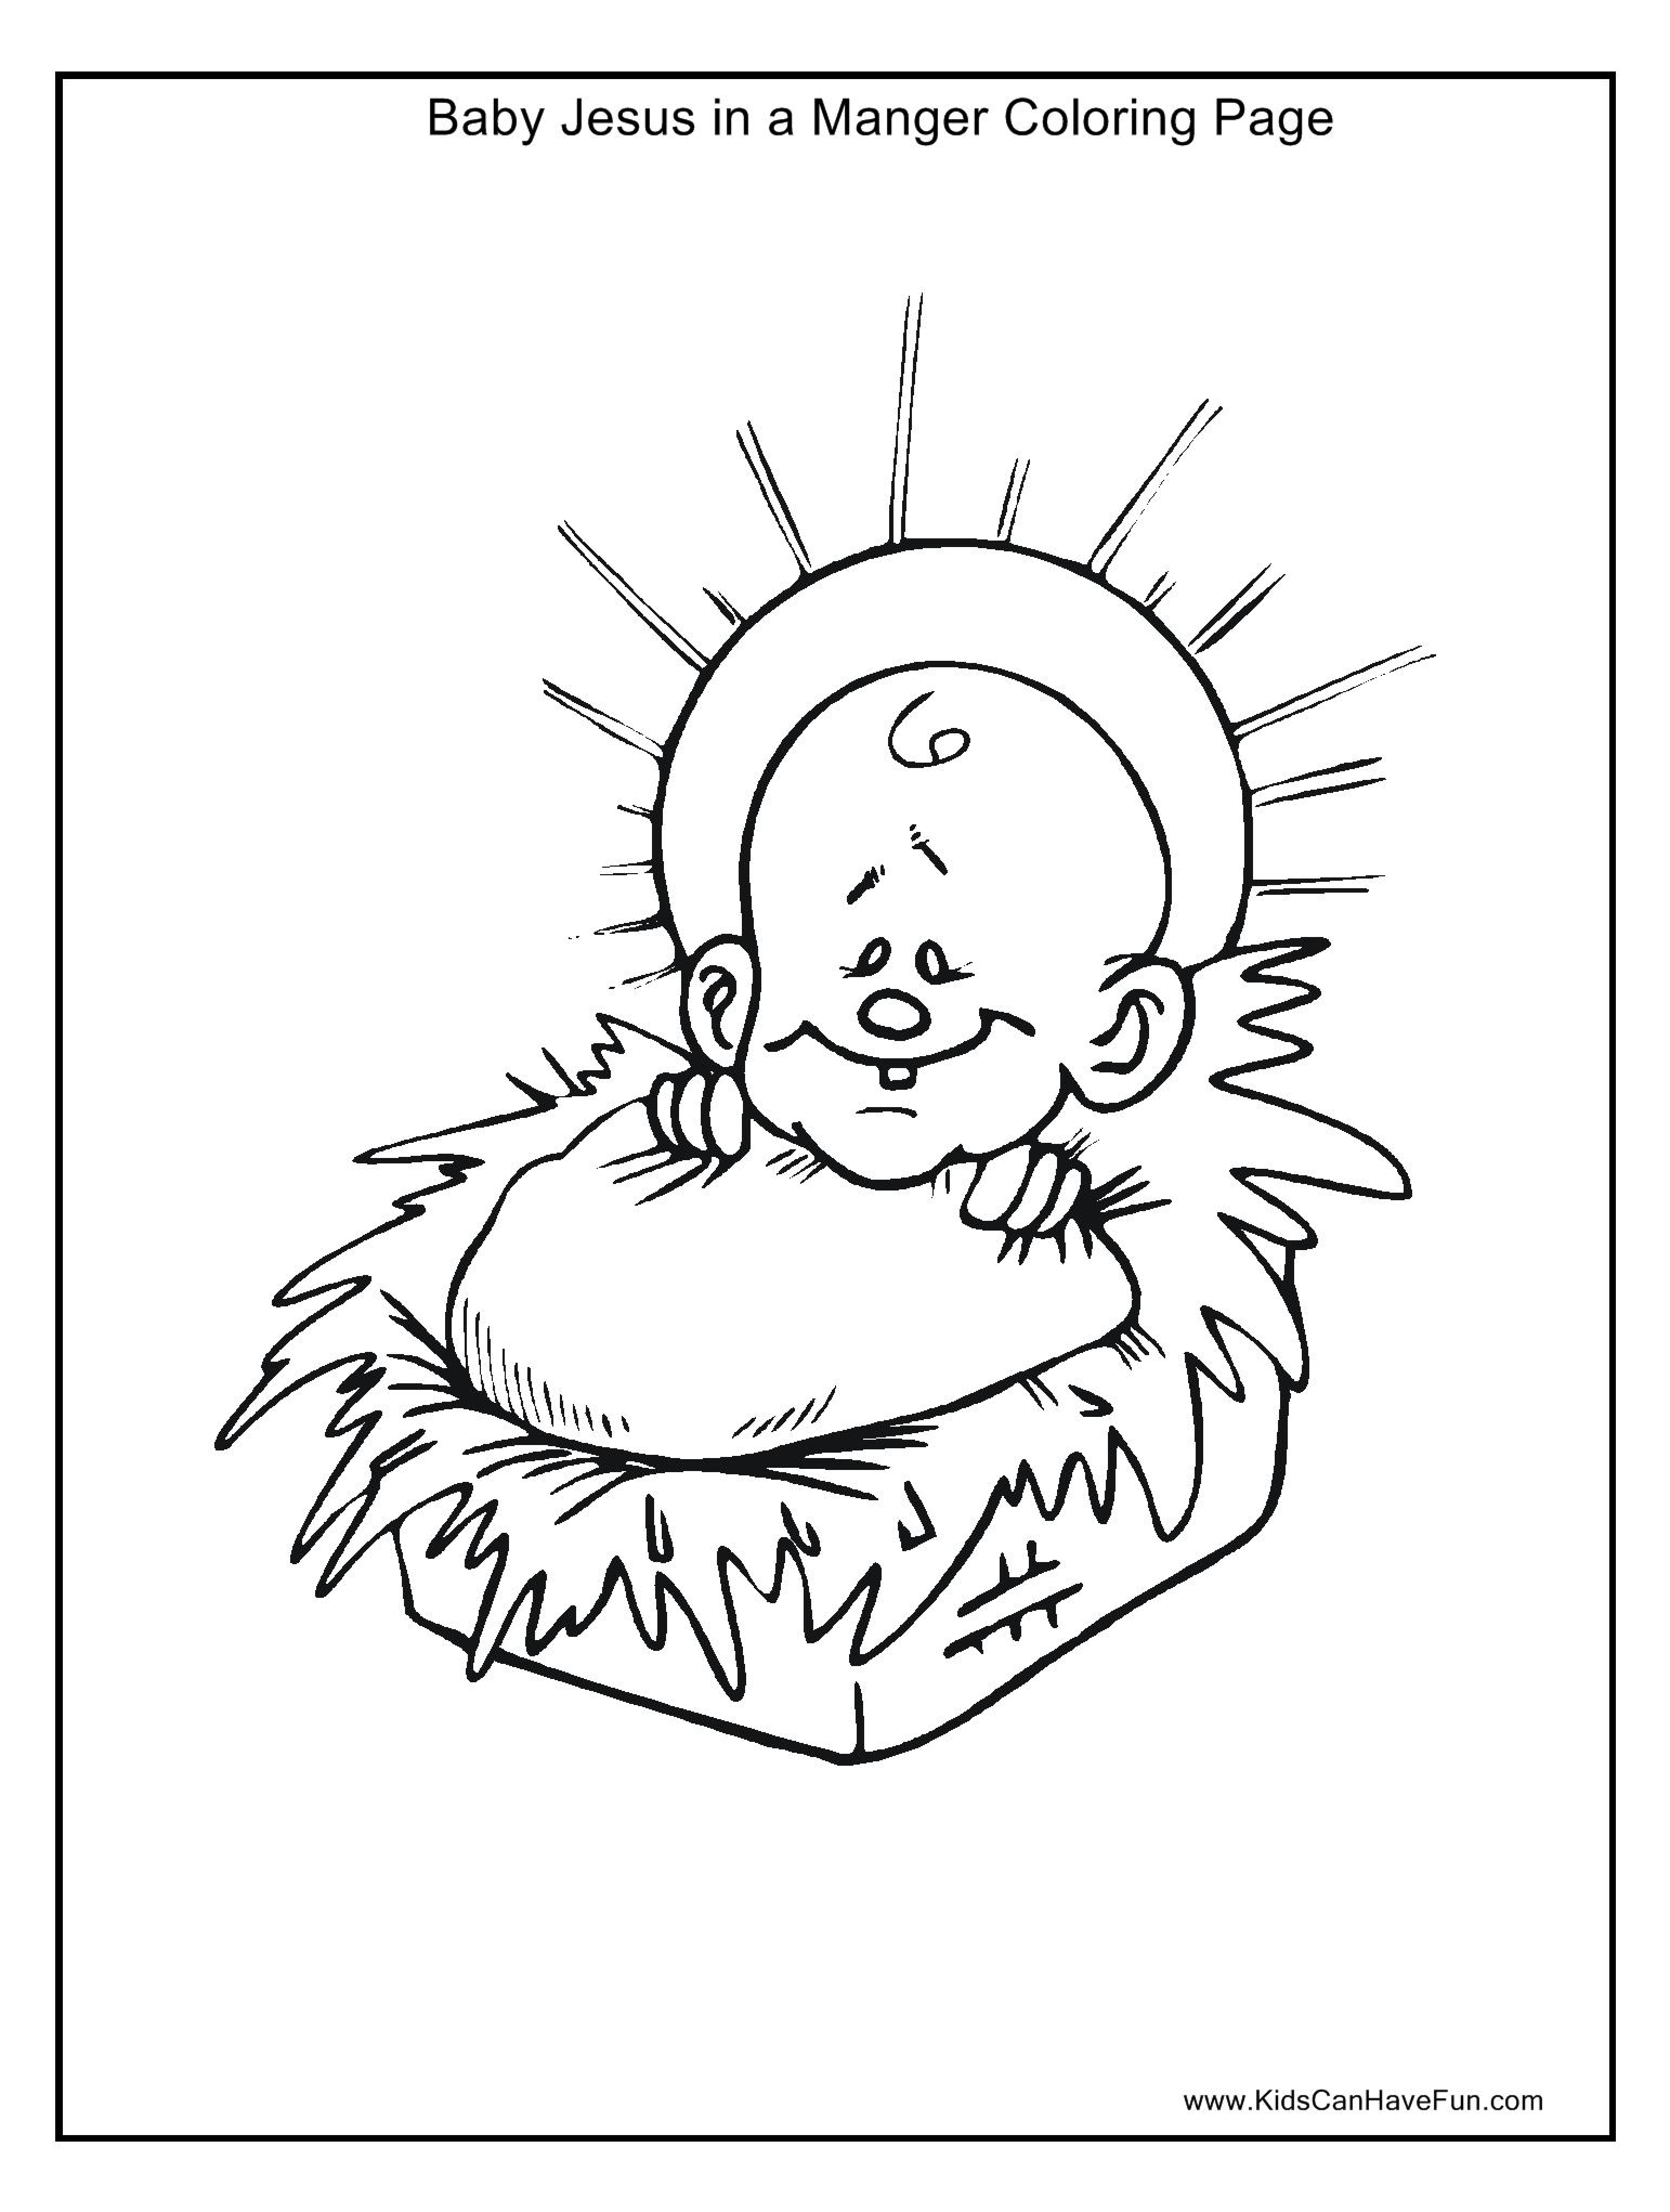 Christmas Manger Coloring Pages With Baby Jesus Halo In Page Http Www